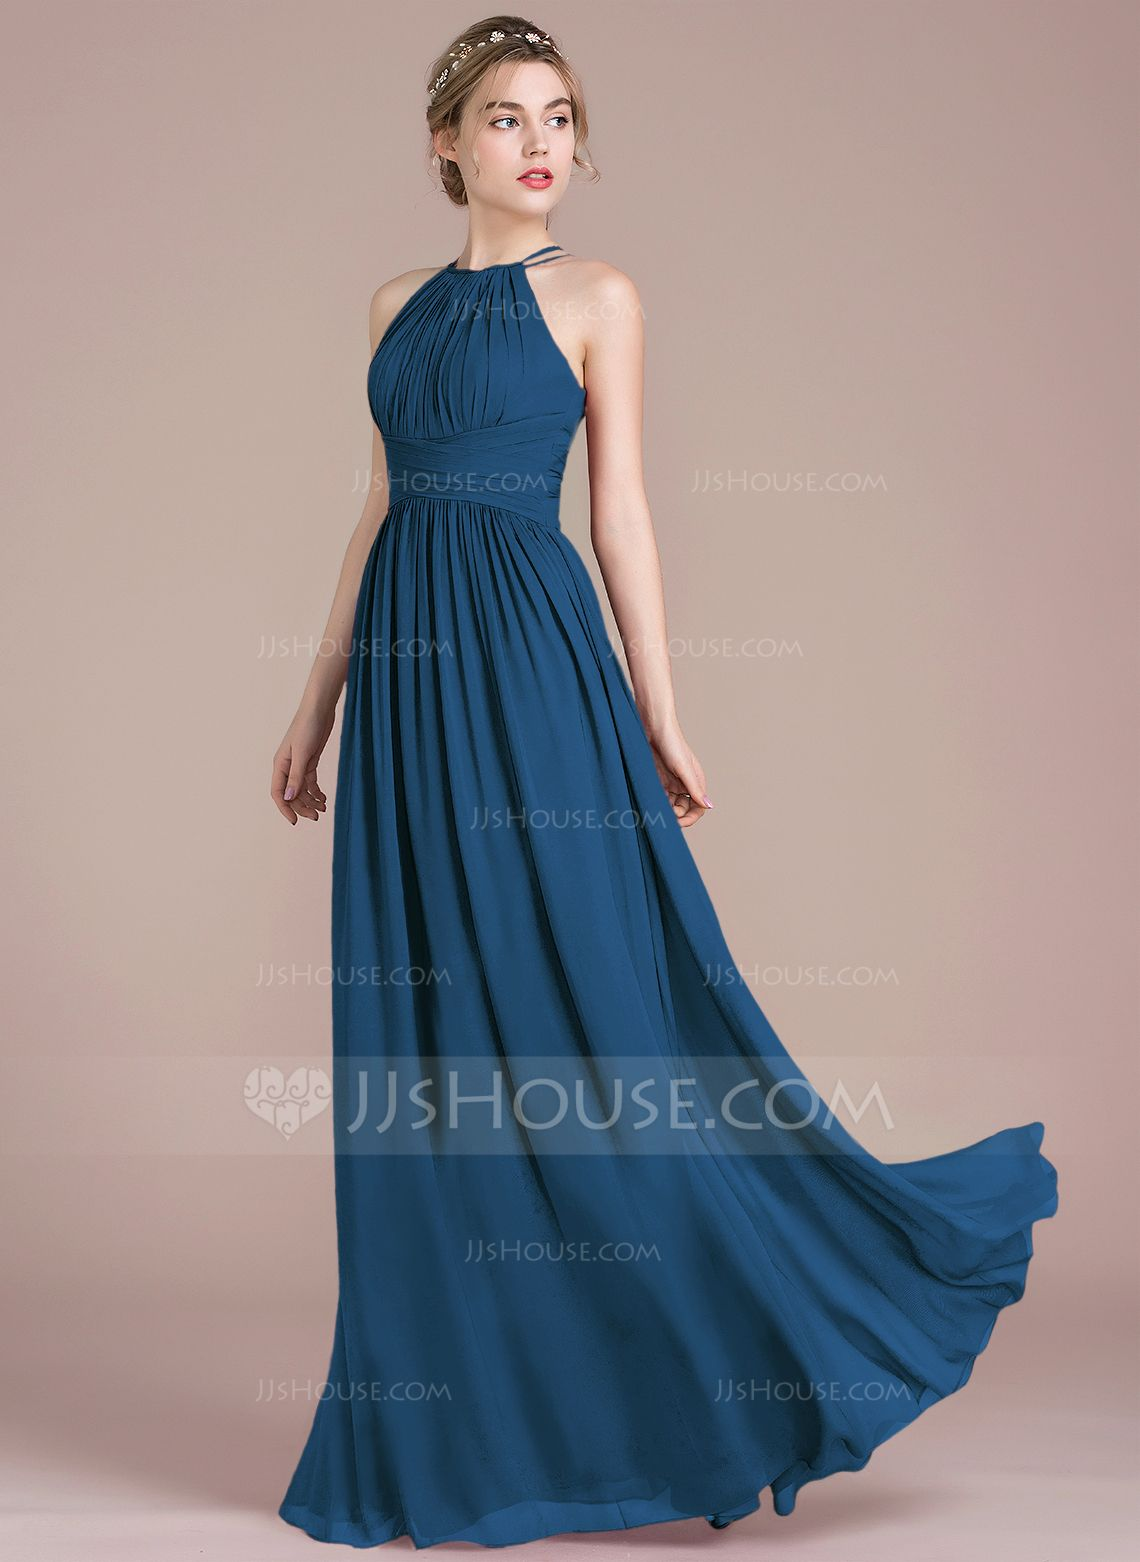 03c3e282bcb JJs House  82- 160 Sizes 2-26 Lots of styles! Colors I like are Ink Blue